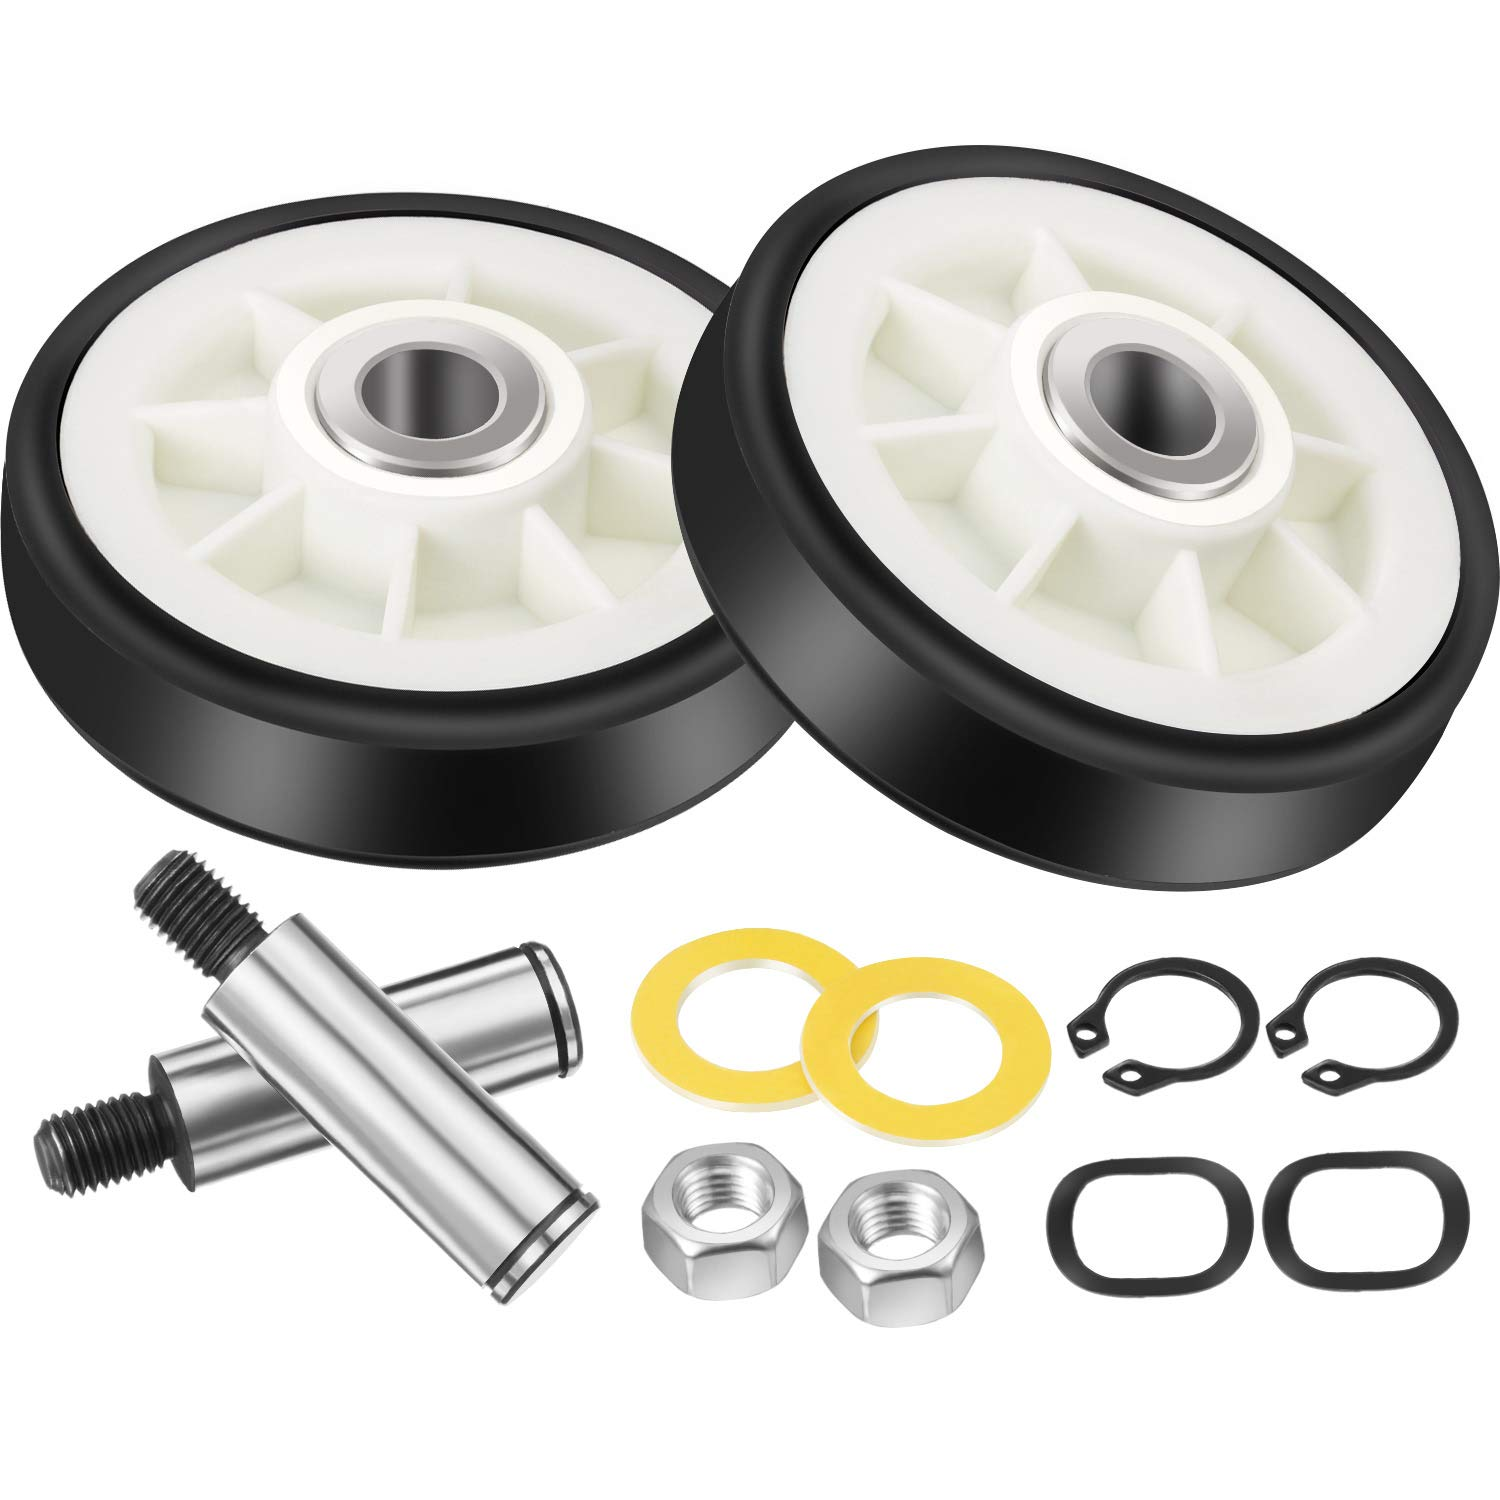 Jetec 2 Set 303373K Dryer Roller Wheel Drum Support Kit Including Dryer Drum Support Roller and Axle Replaces 303373, 12001541, ER303373K, 303373K